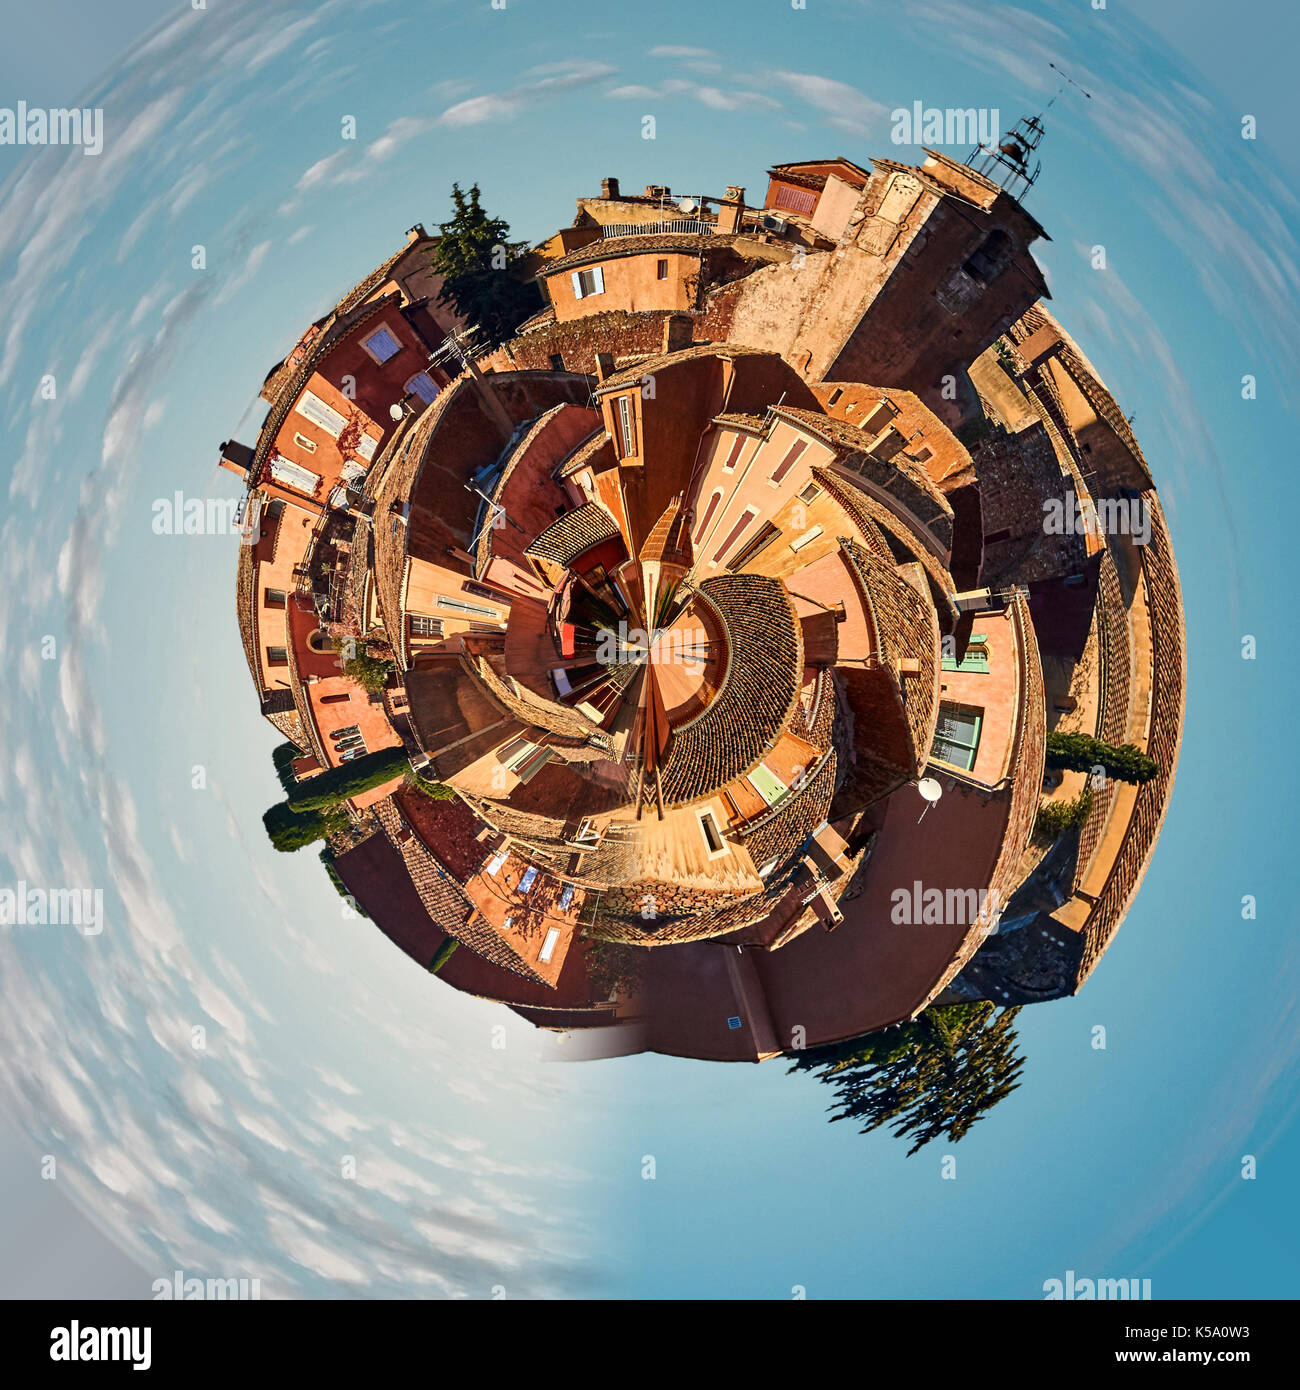 Little planet 360 degree sphere. Panorama of Roussillon village. One of the most impressive villages in France - Stock Image